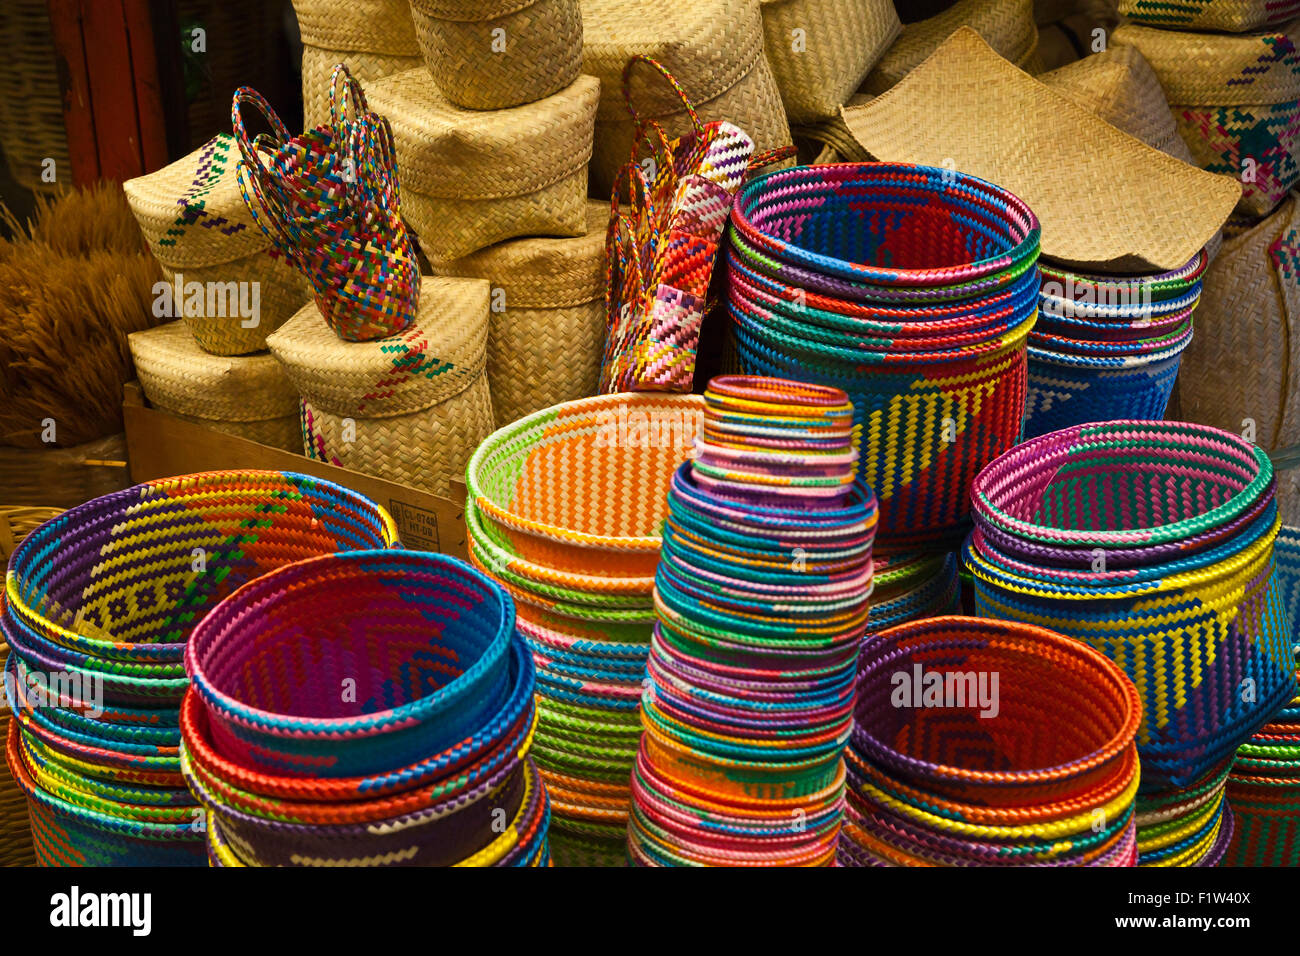 Hand Woven Baskets Sale In Market Stock Photos & Hand Woven Baskets ...